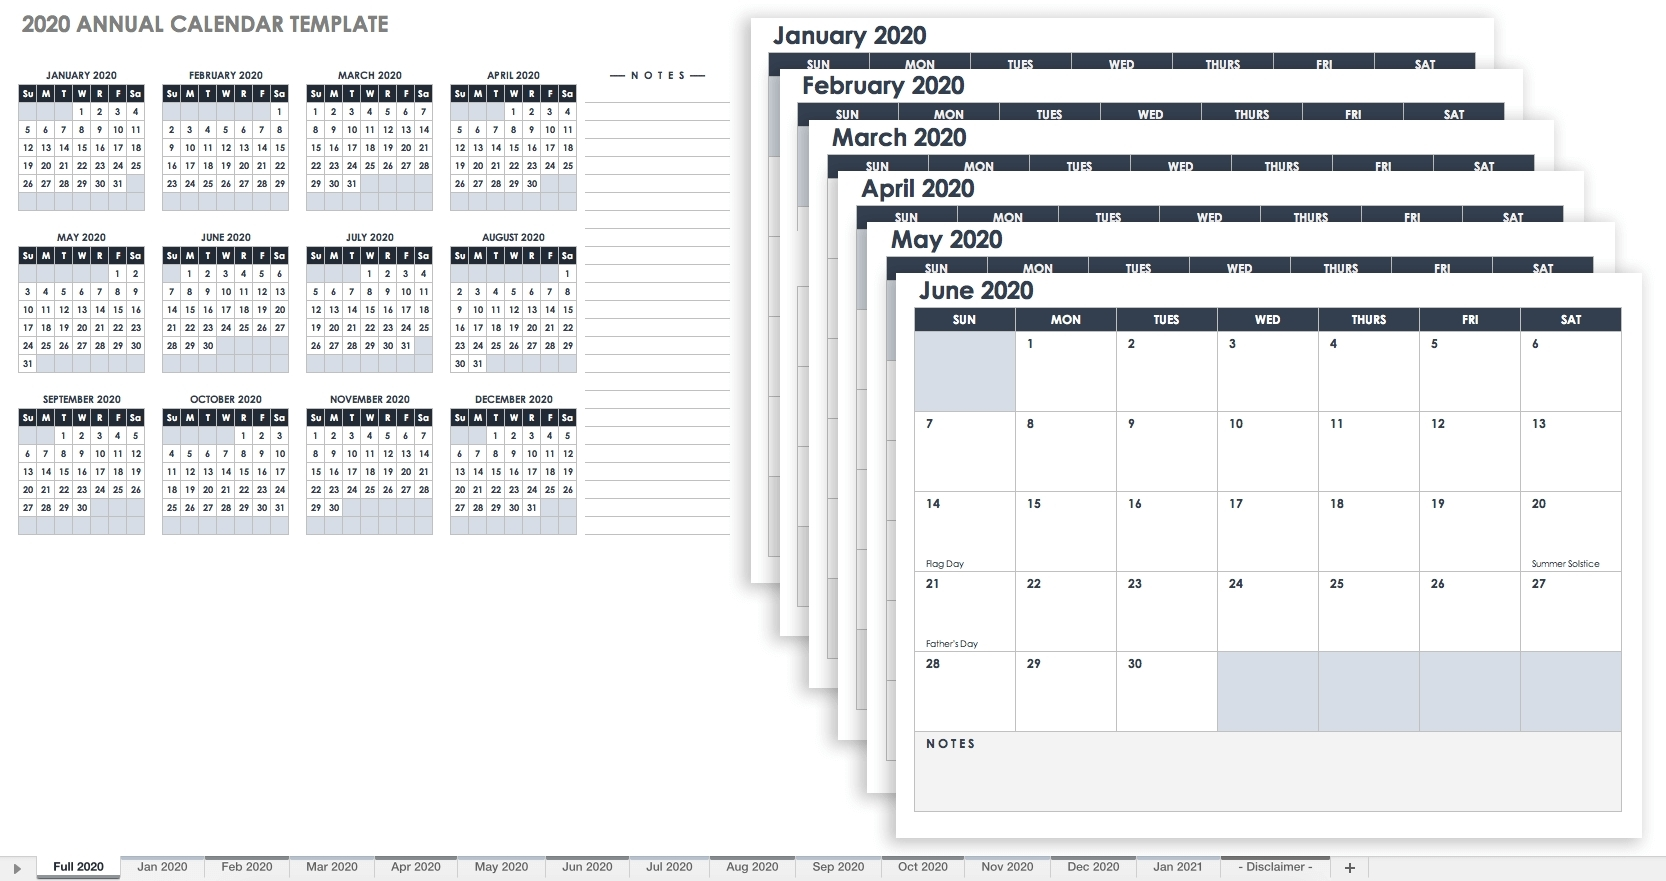 Add Calendar Icon To Excel Cell • Printable Blank Calendar Template_Calendar Icon In Excel 2019